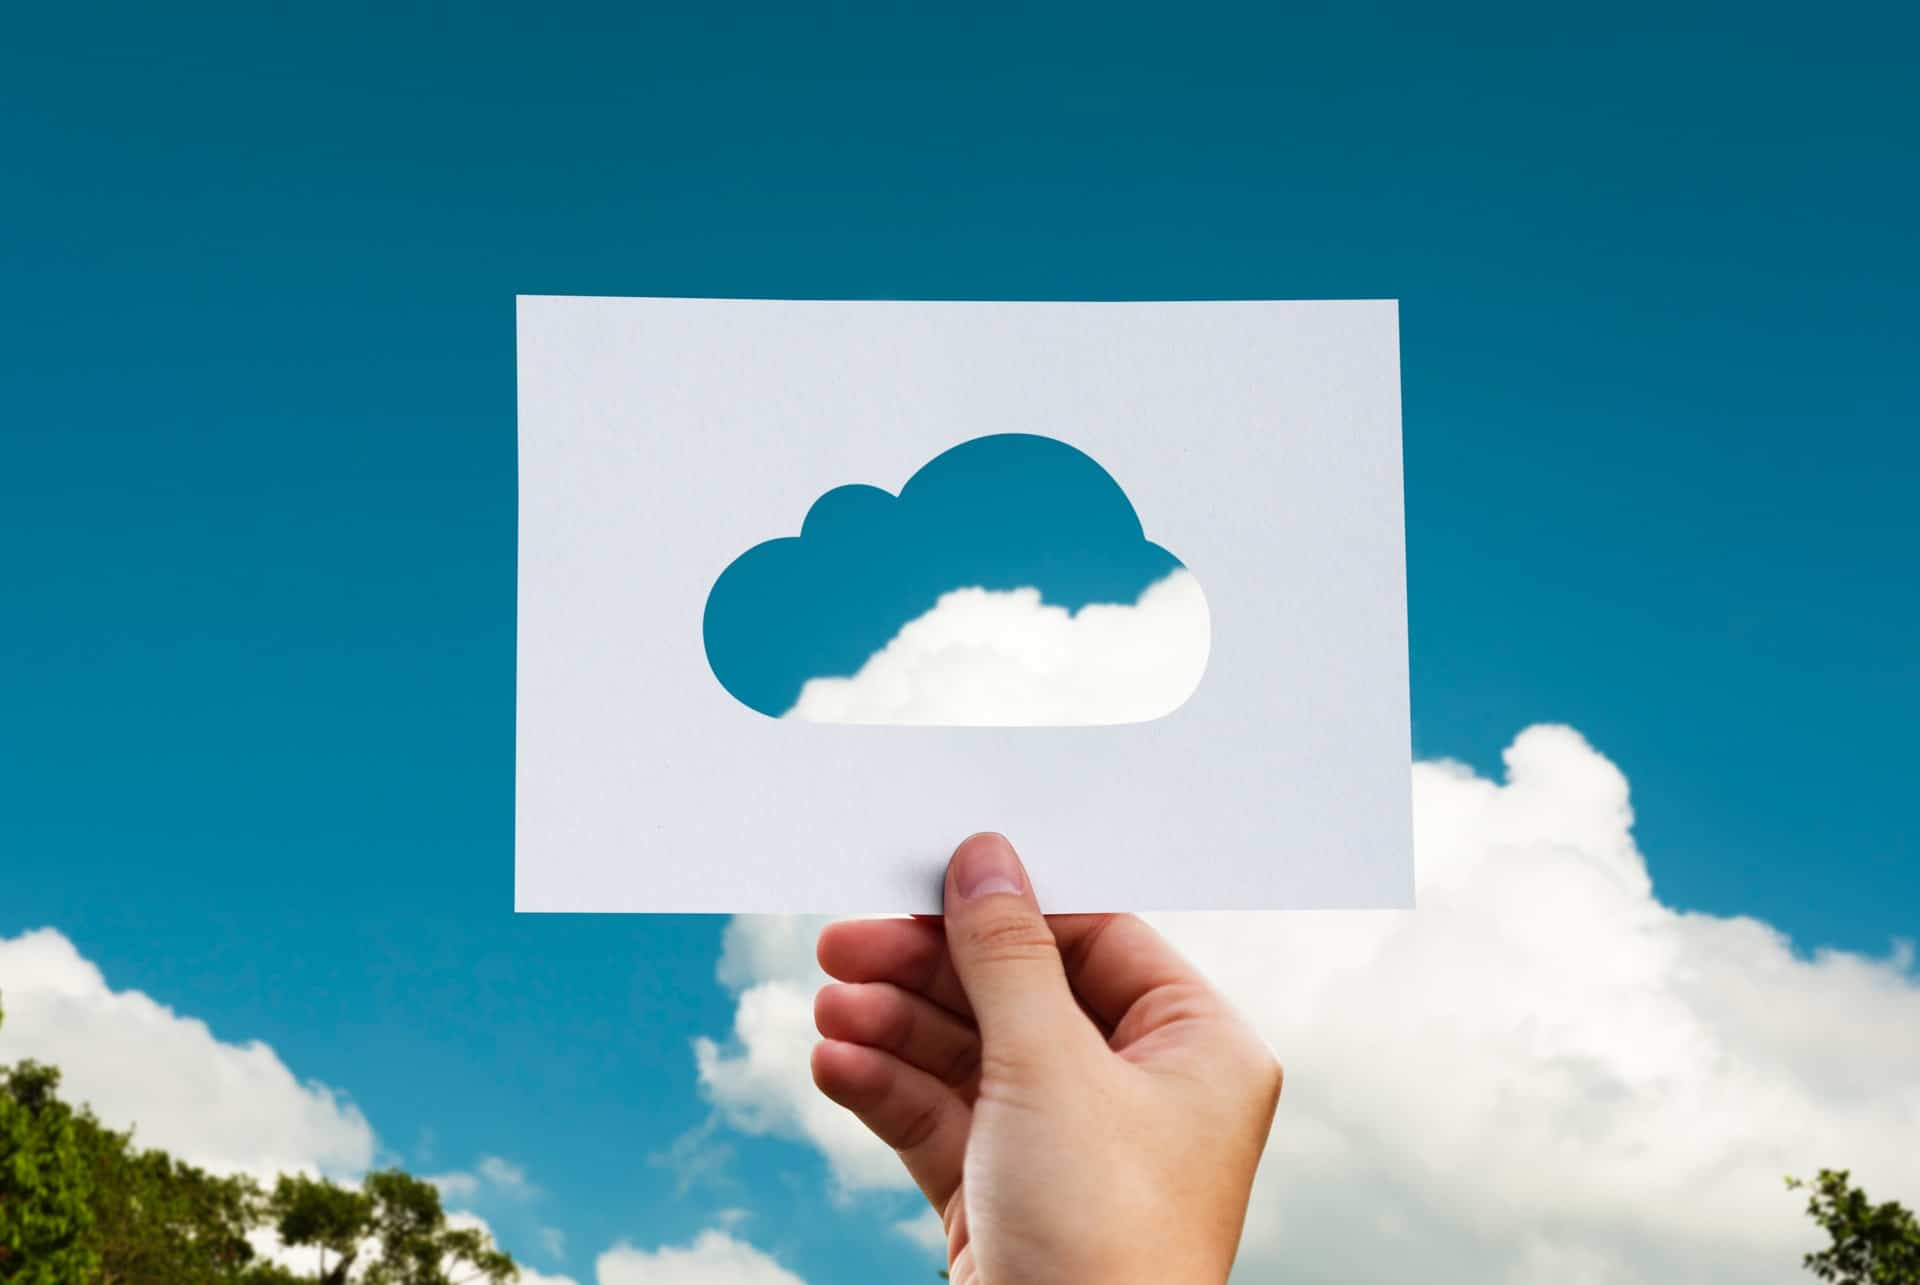 Paper cloud held in front of a blue sky - cloud computing